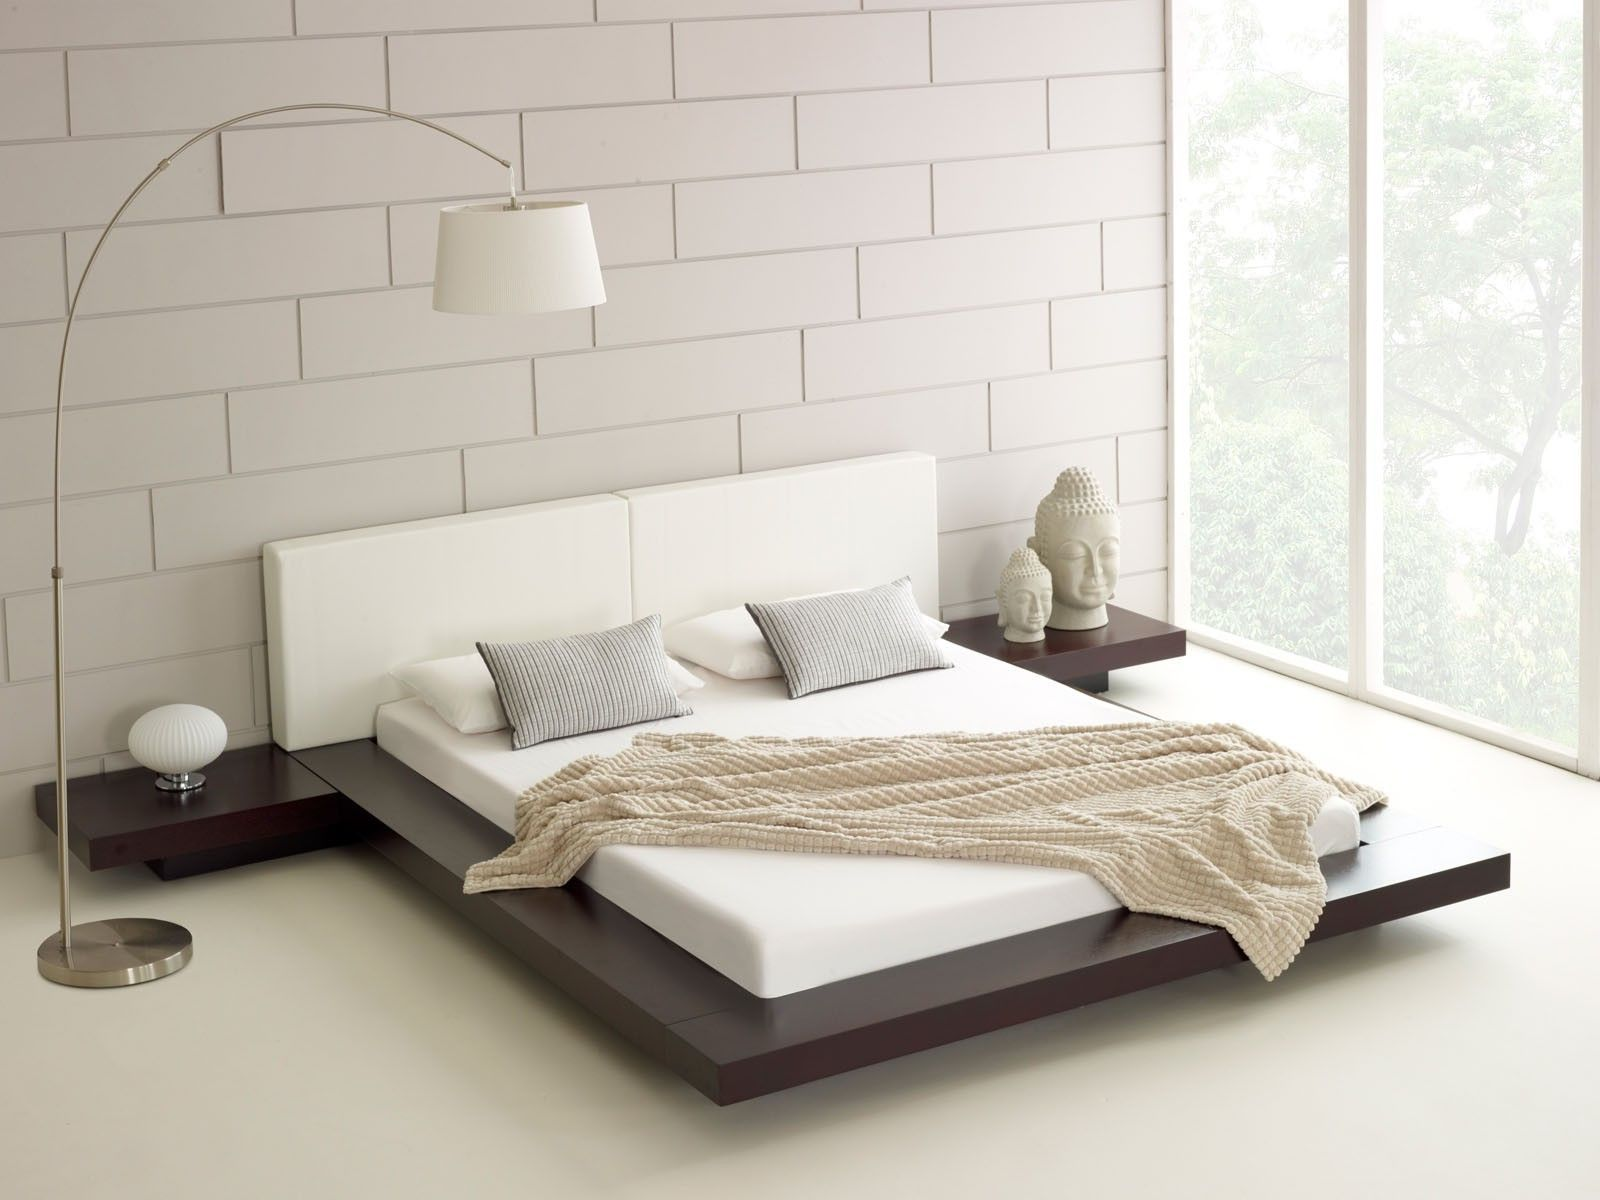 Asian Floor Mattress Contemporary White Japanese Bed Design With Unique White